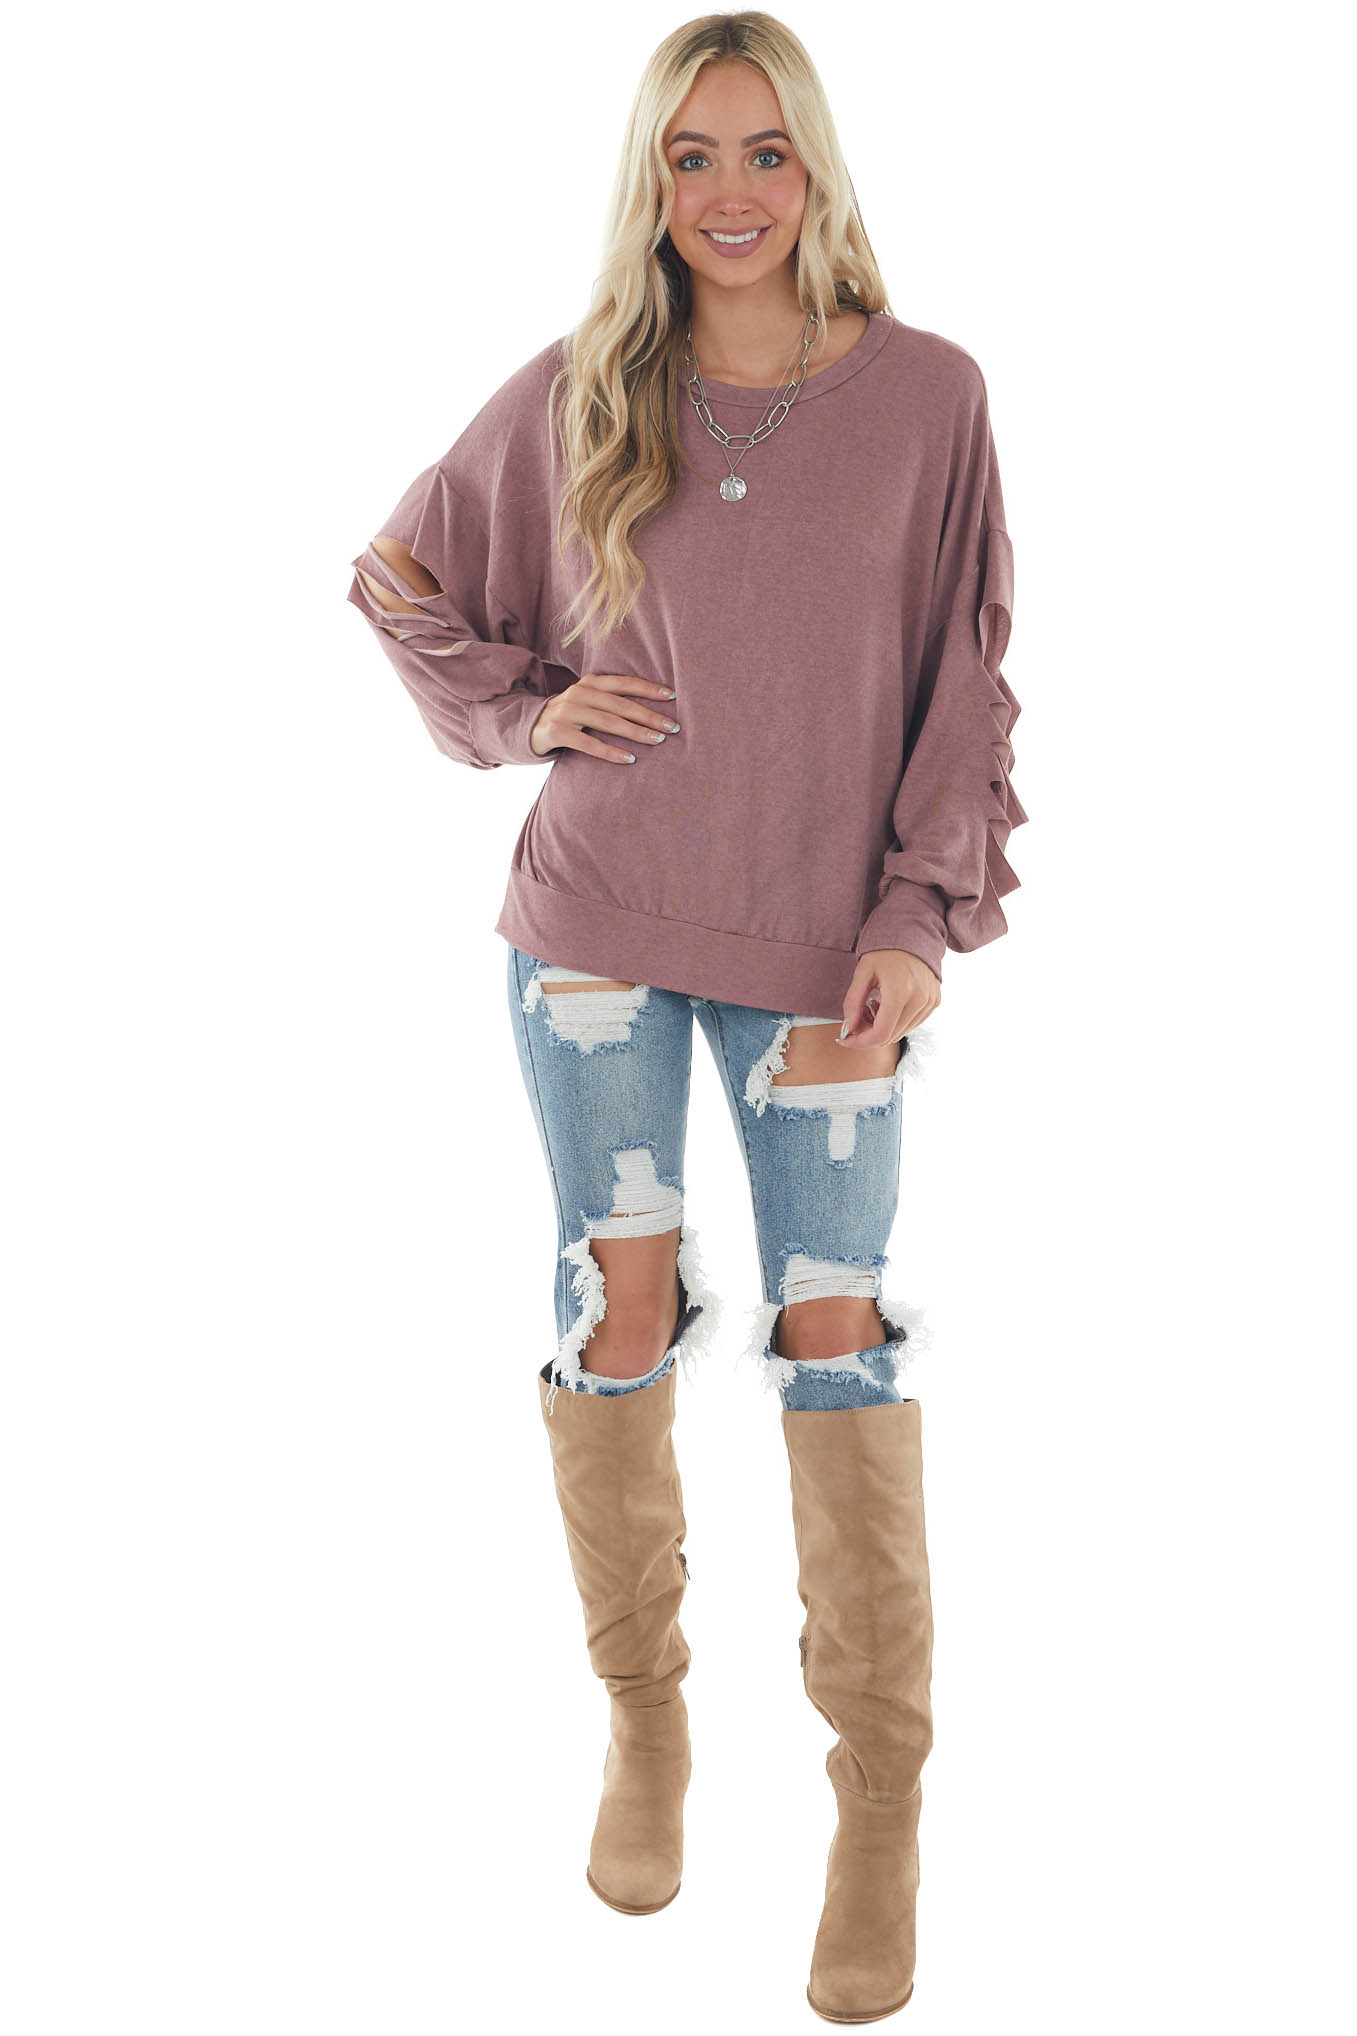 Faded Berry Slashed Sleeve Banded Knit Top